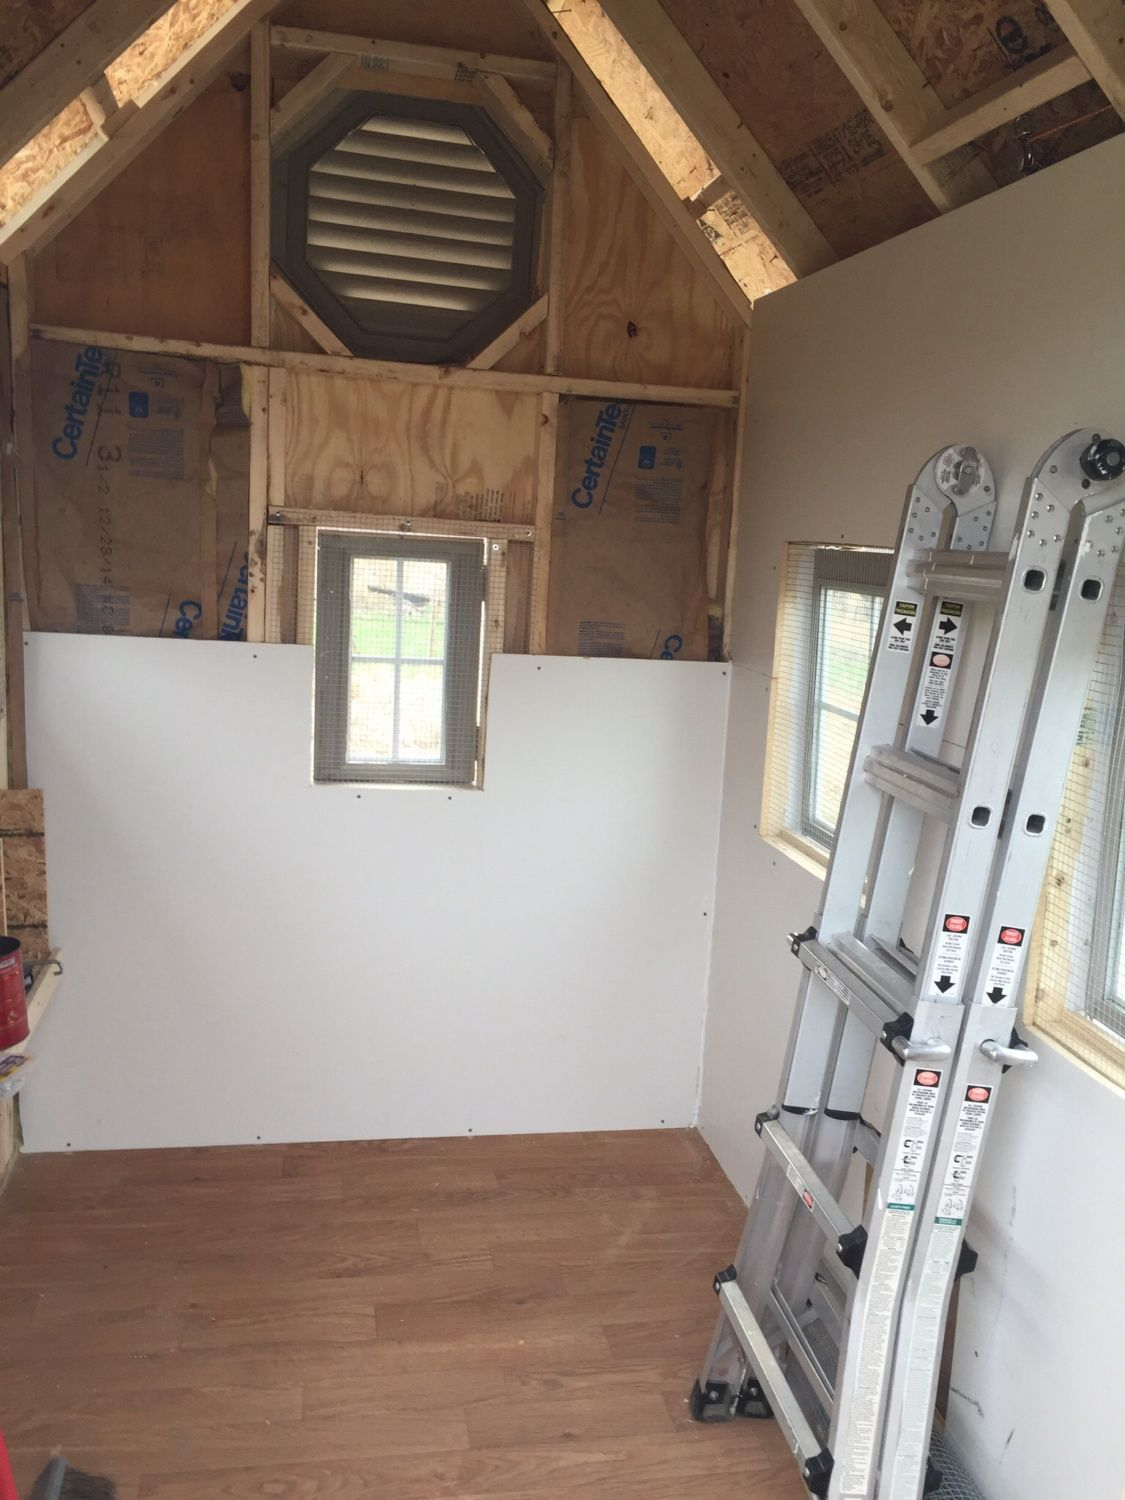 Insulation and wall covering begin to go up.